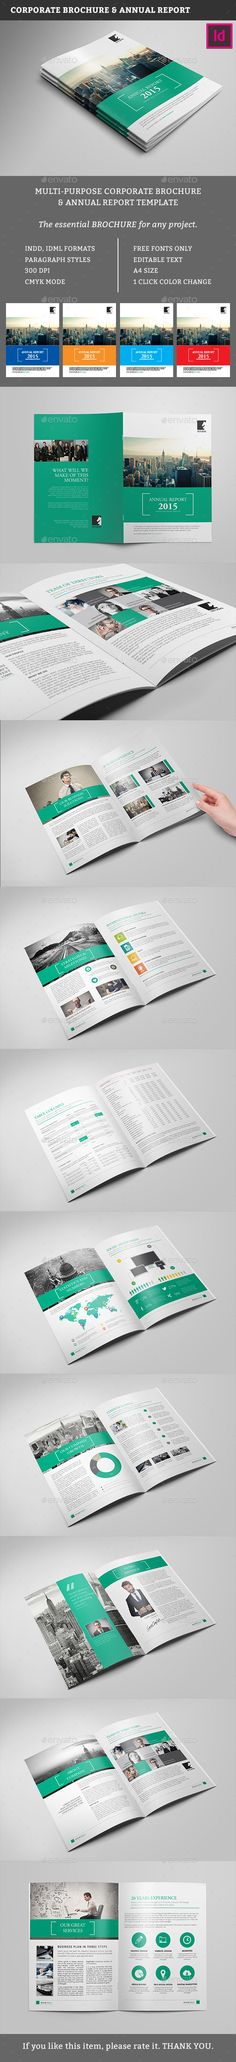 Cherry Multipurpose Brochure Template Δημιουργικός, Κείμενα και - free business report template